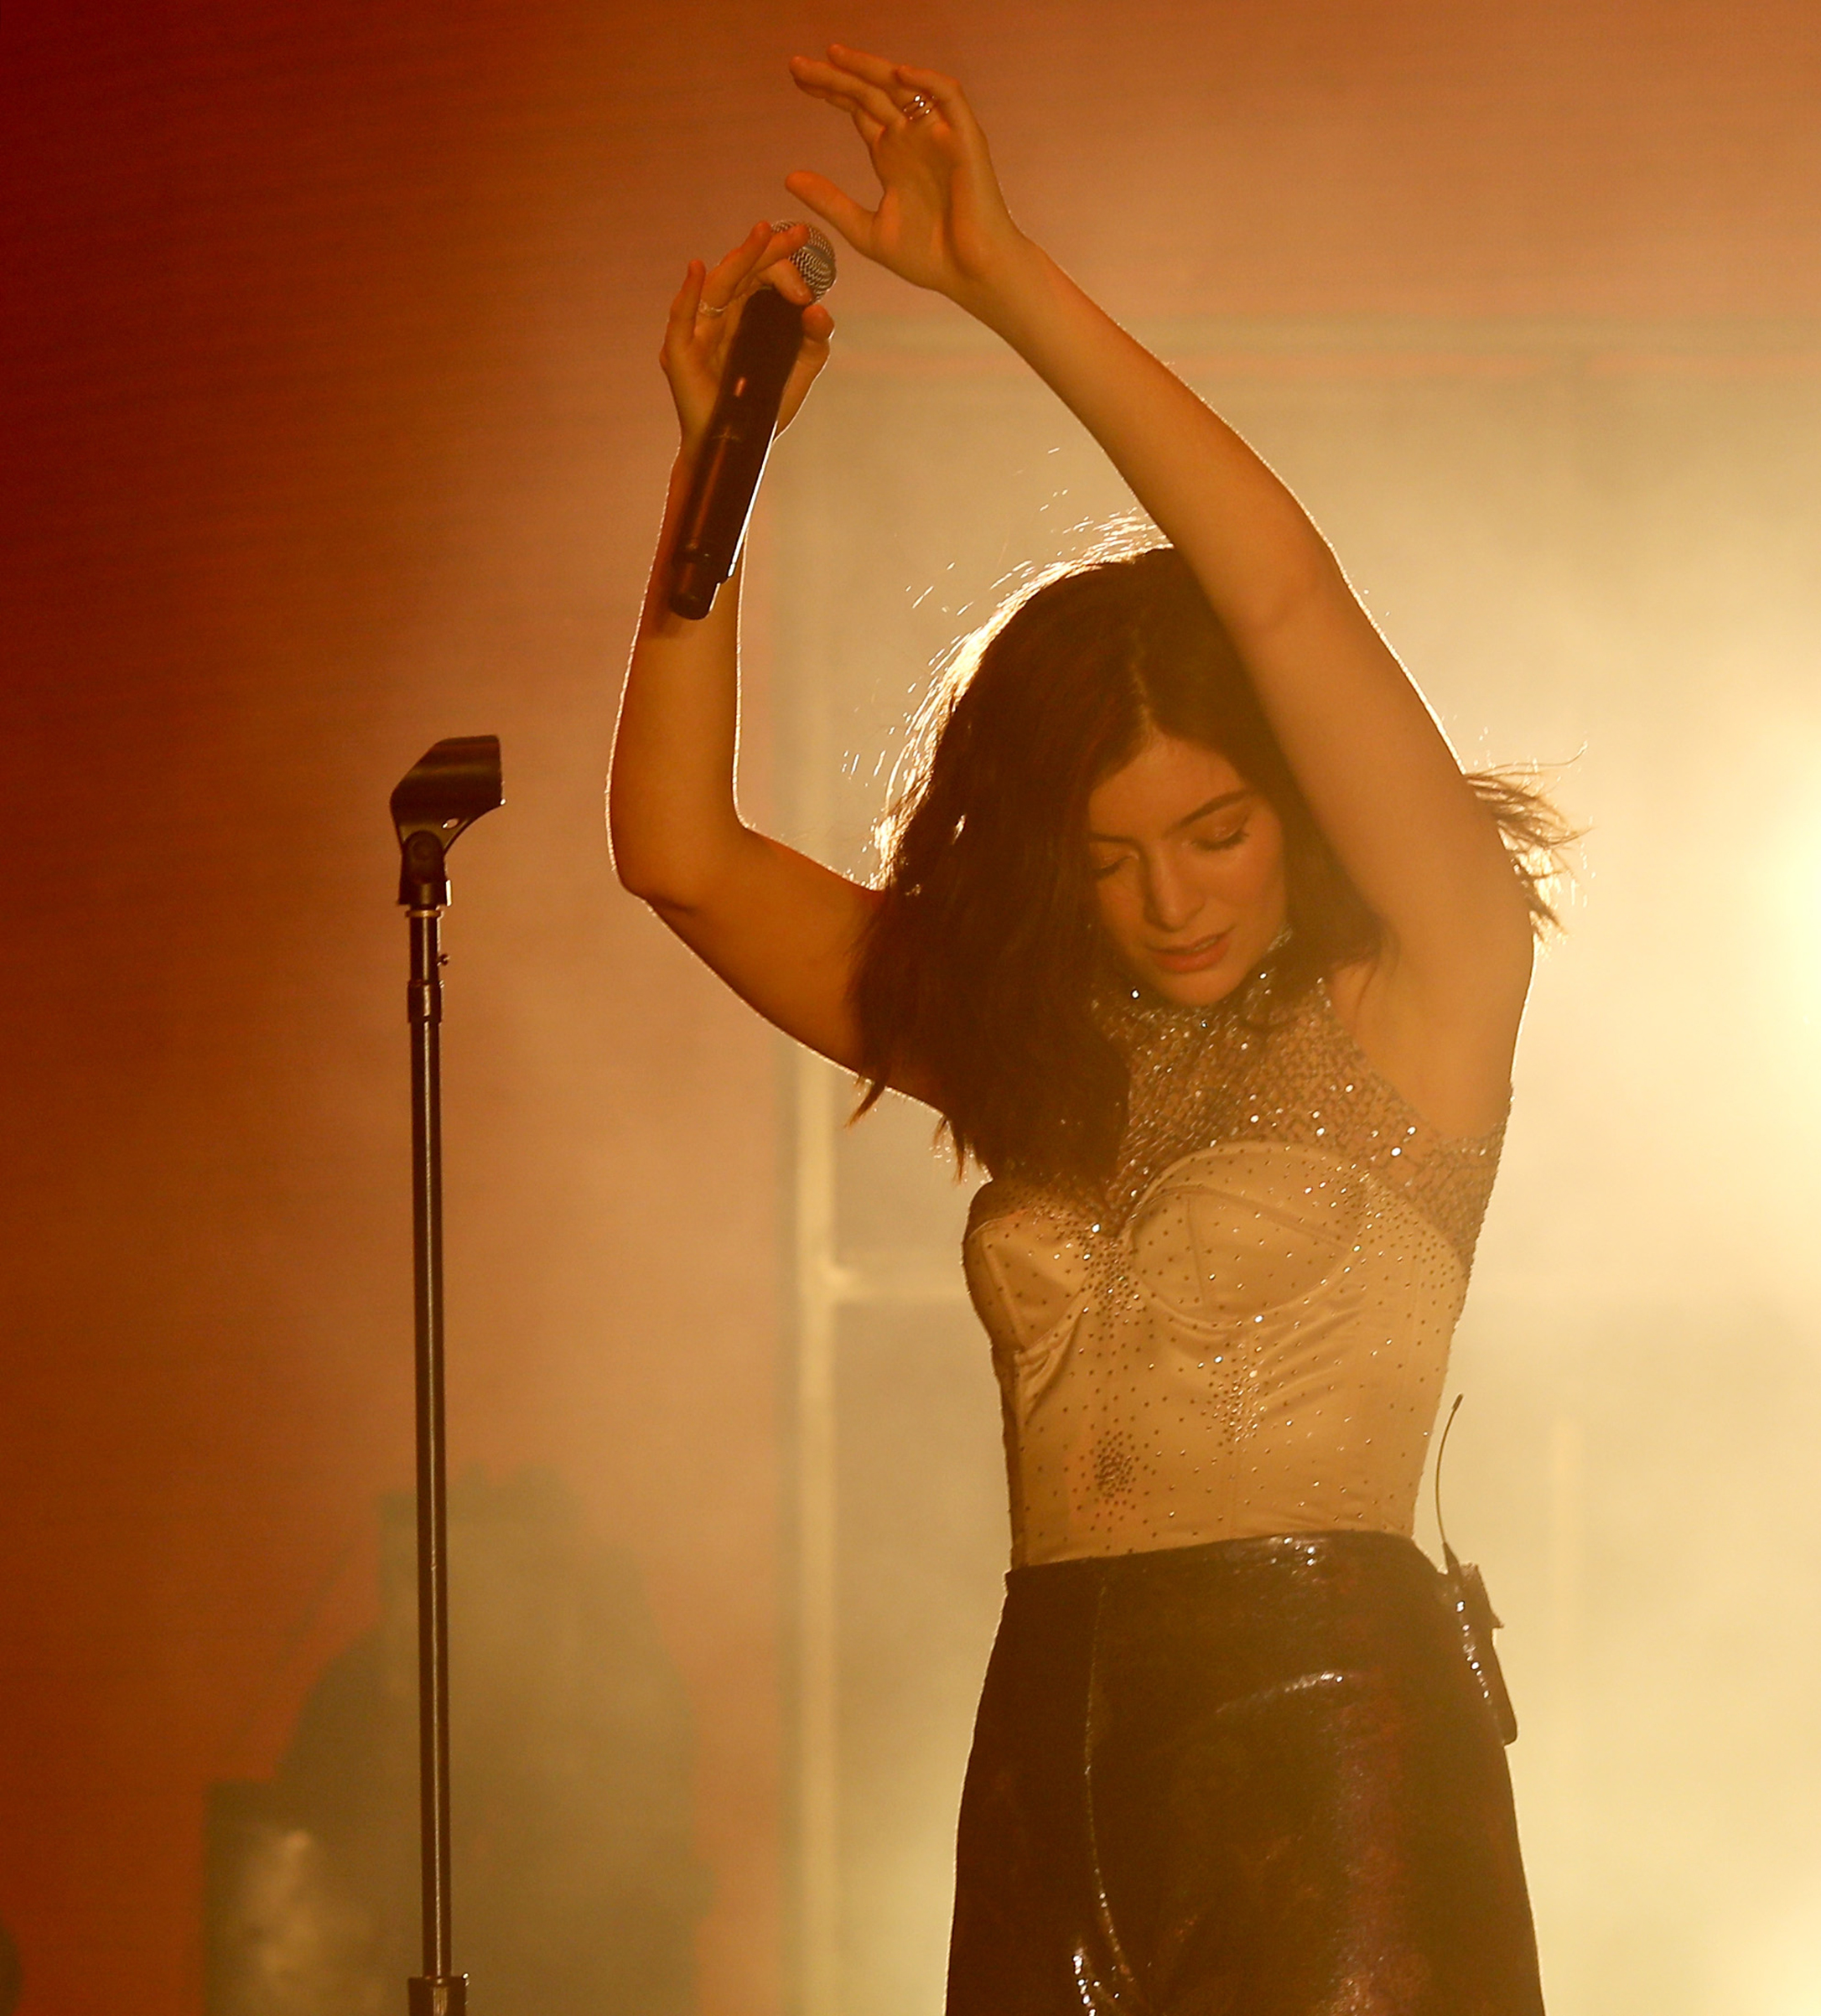 Lorde performs at the music festival Coachella in mid-April